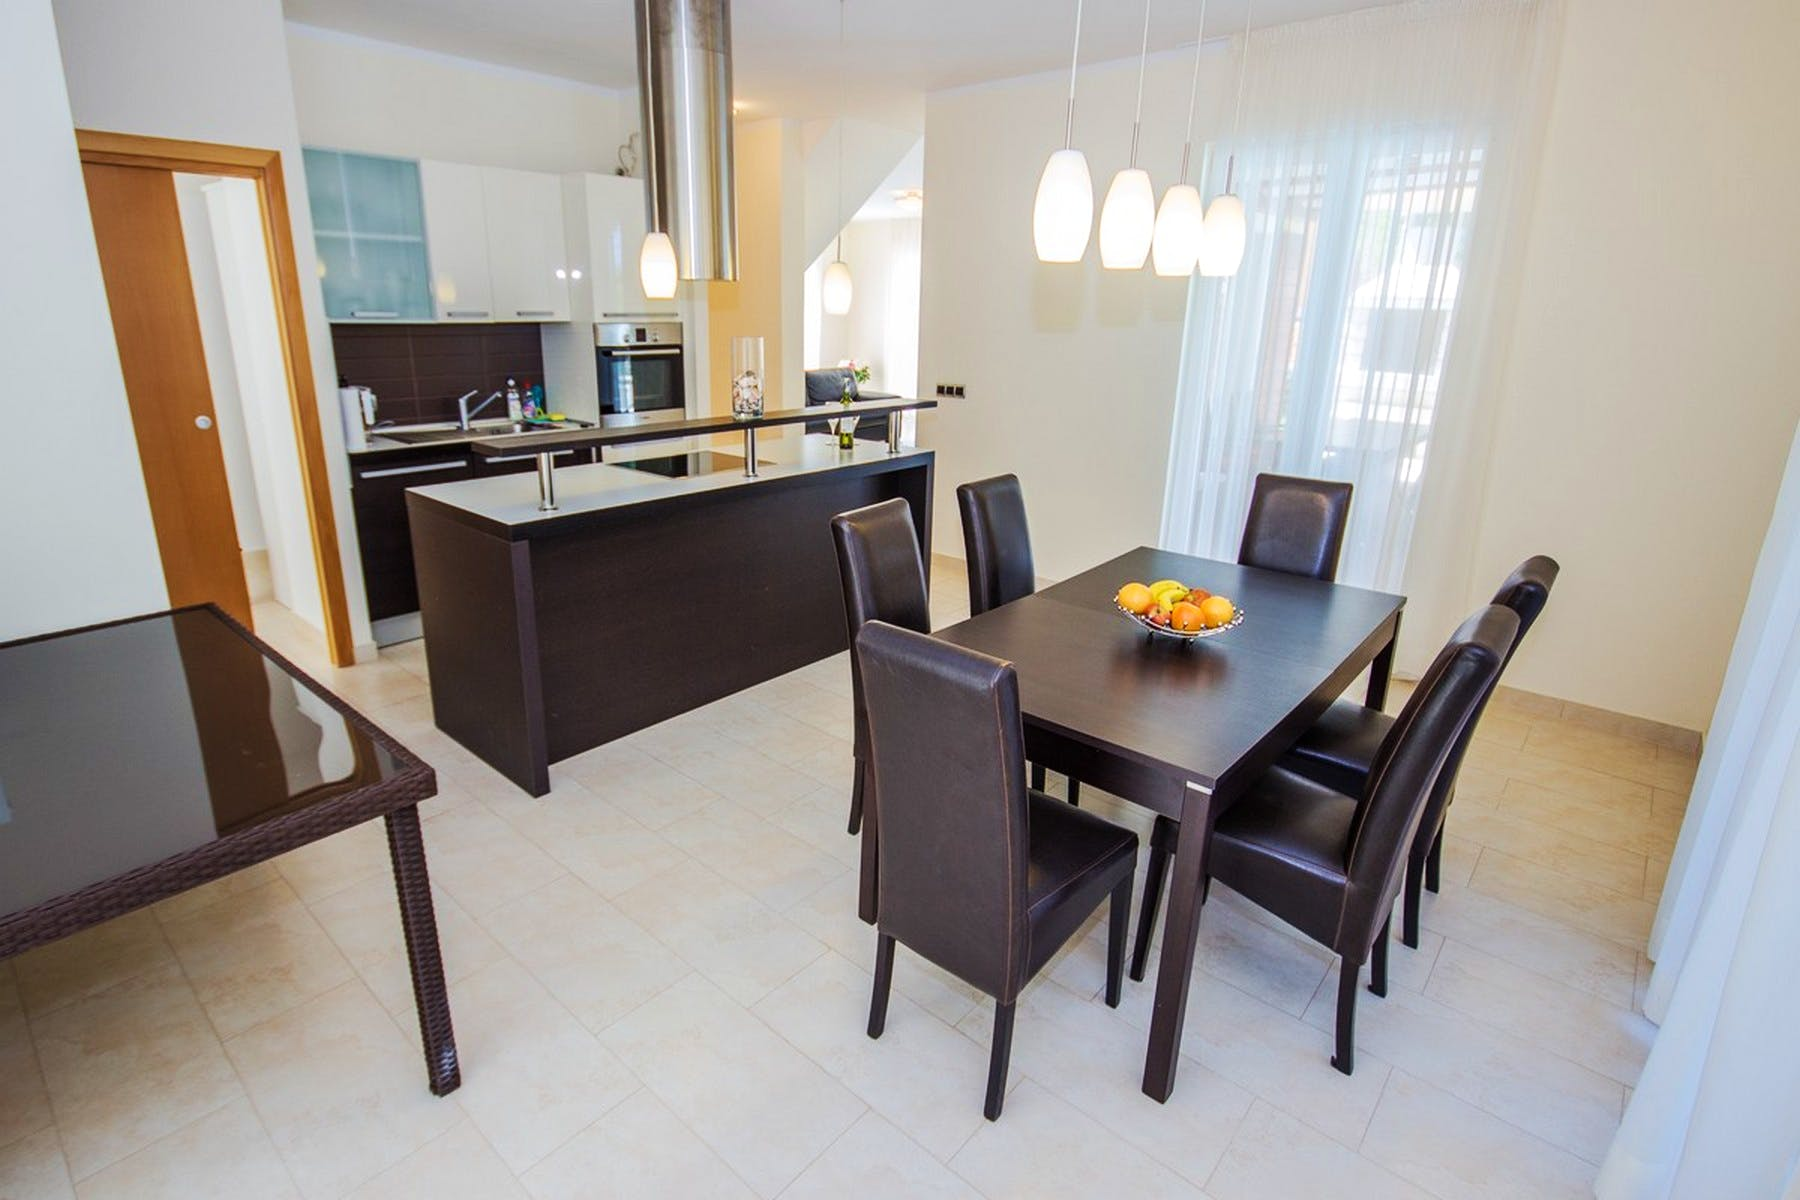 Another angle on the dining area and kitchen